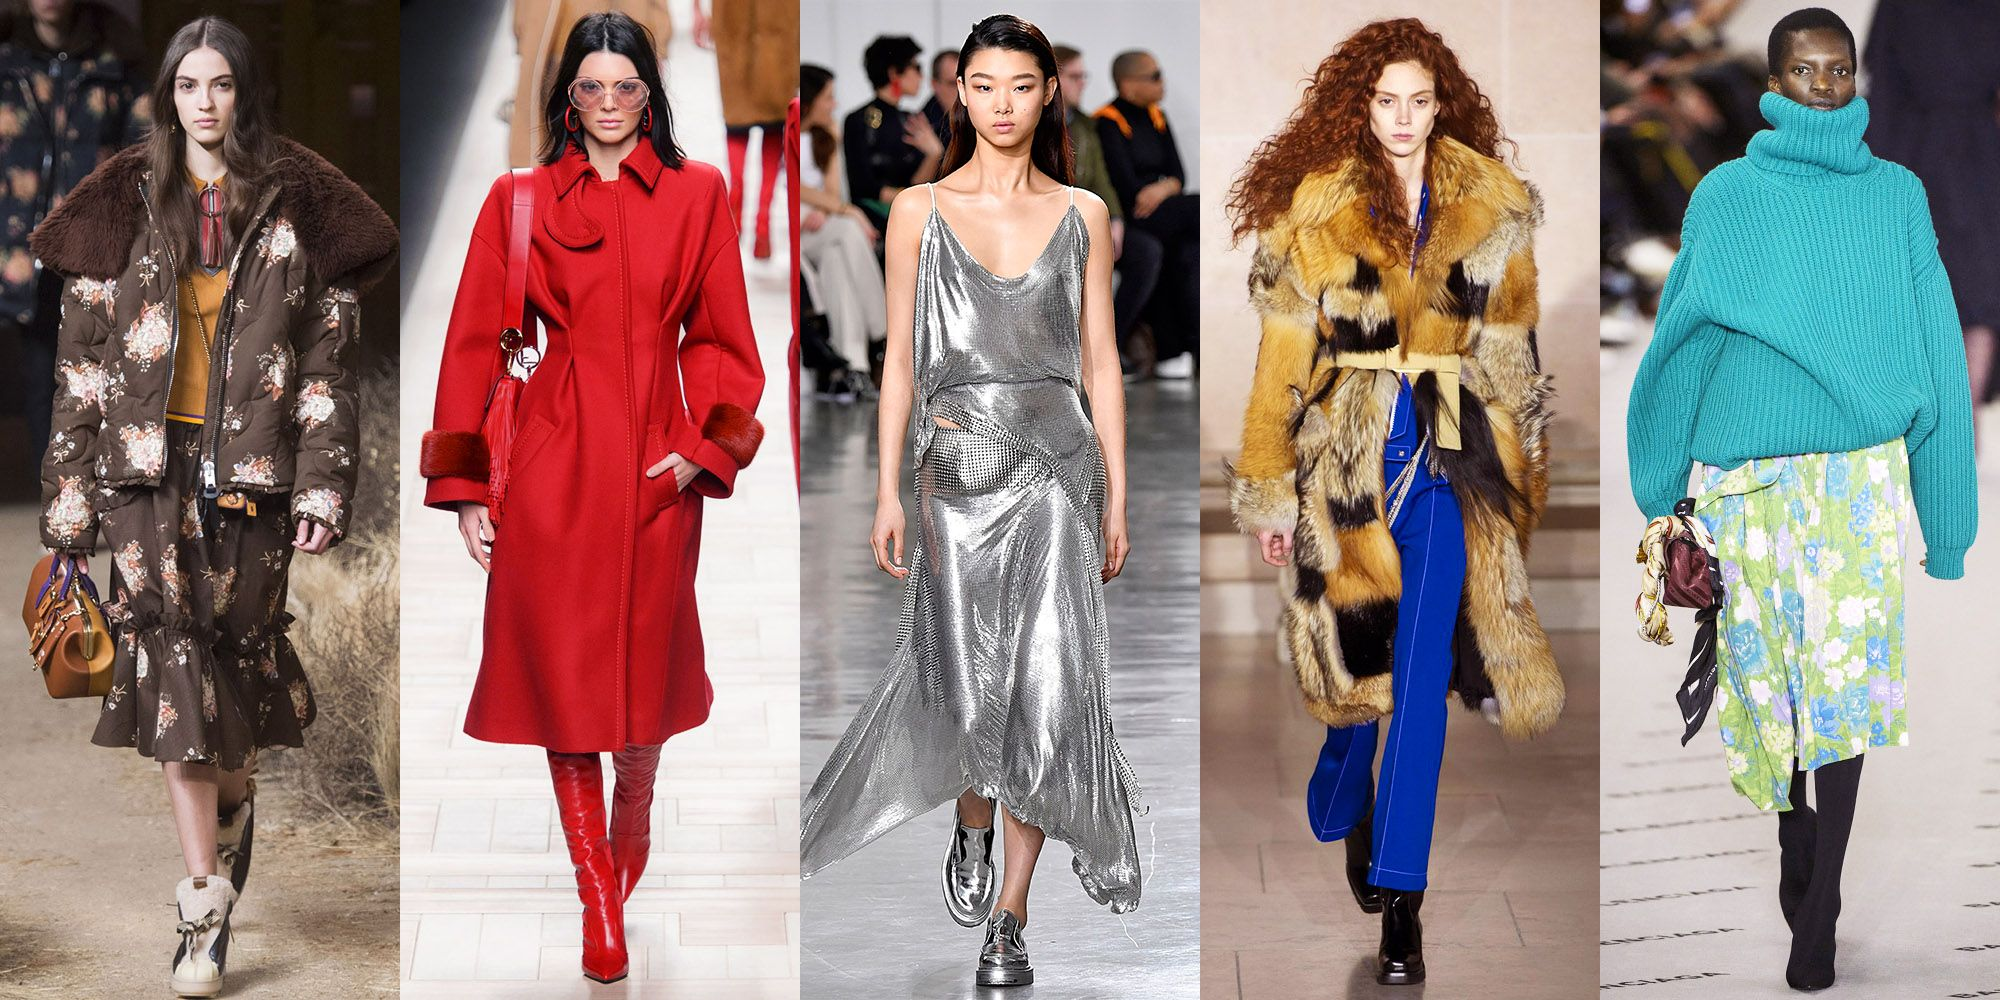 11d428d788 The Winter Trends to Try in 2017 - Winter 2018 Fashion Trends Inspired by  the 2017 Runway